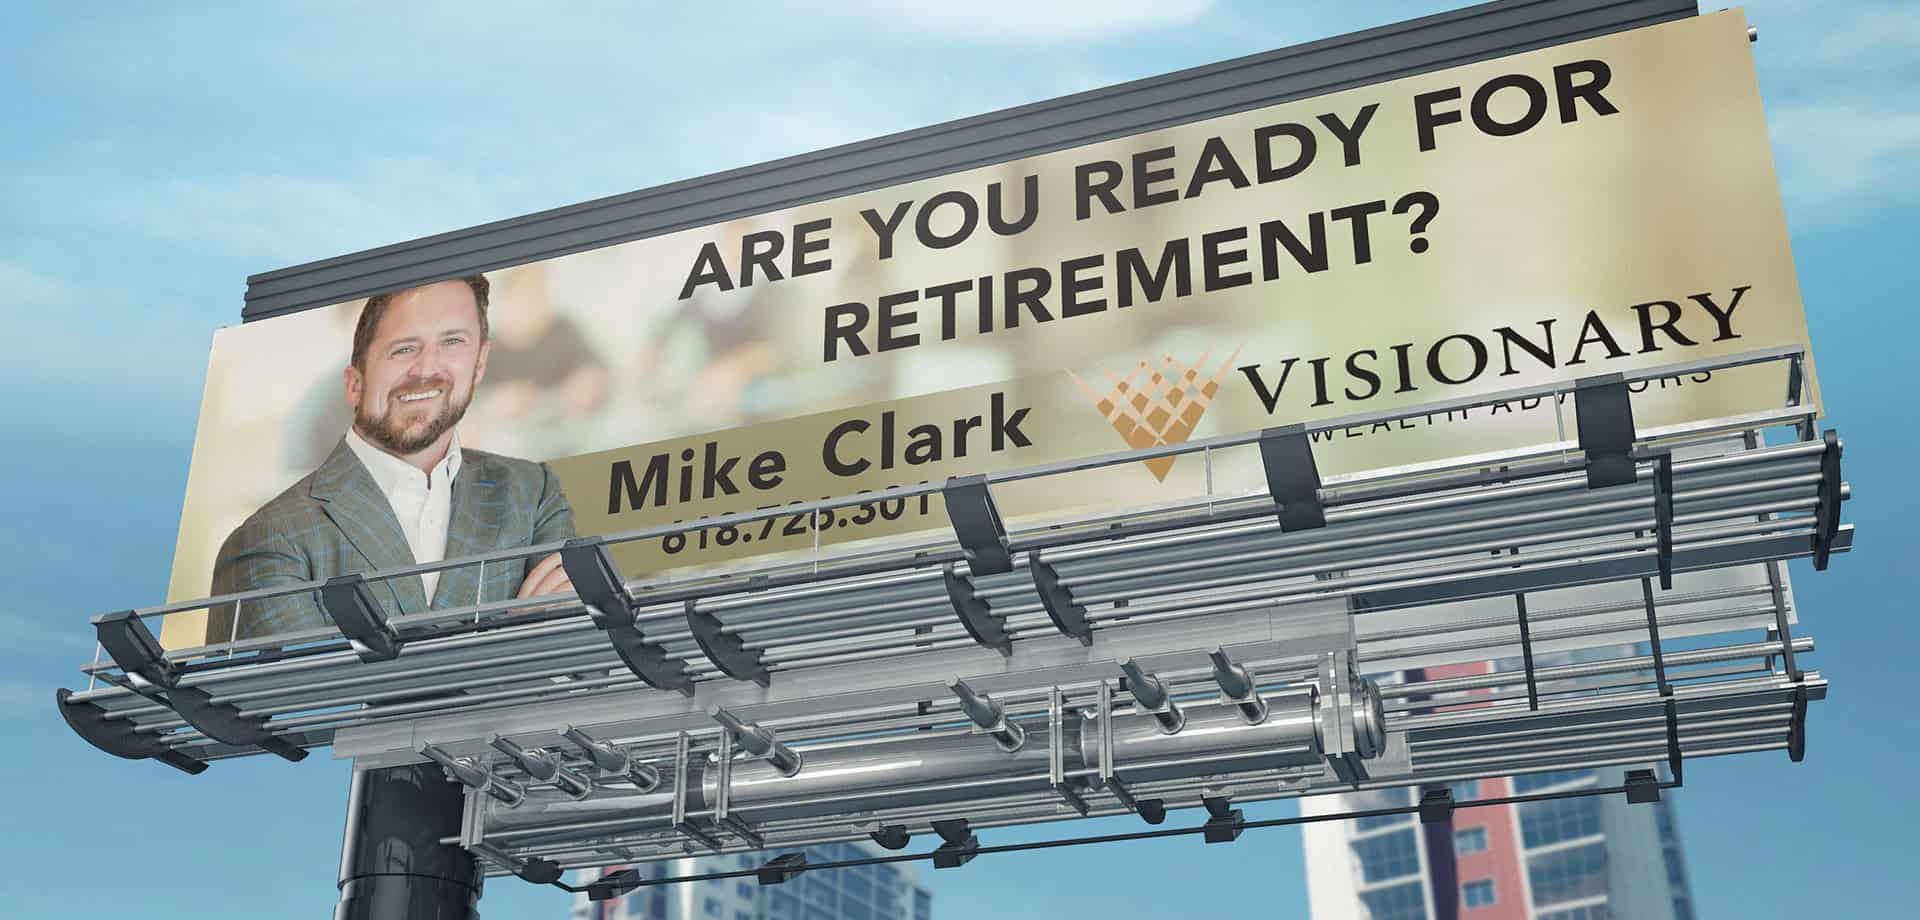 Mike Clark Visionary Wealth billboard